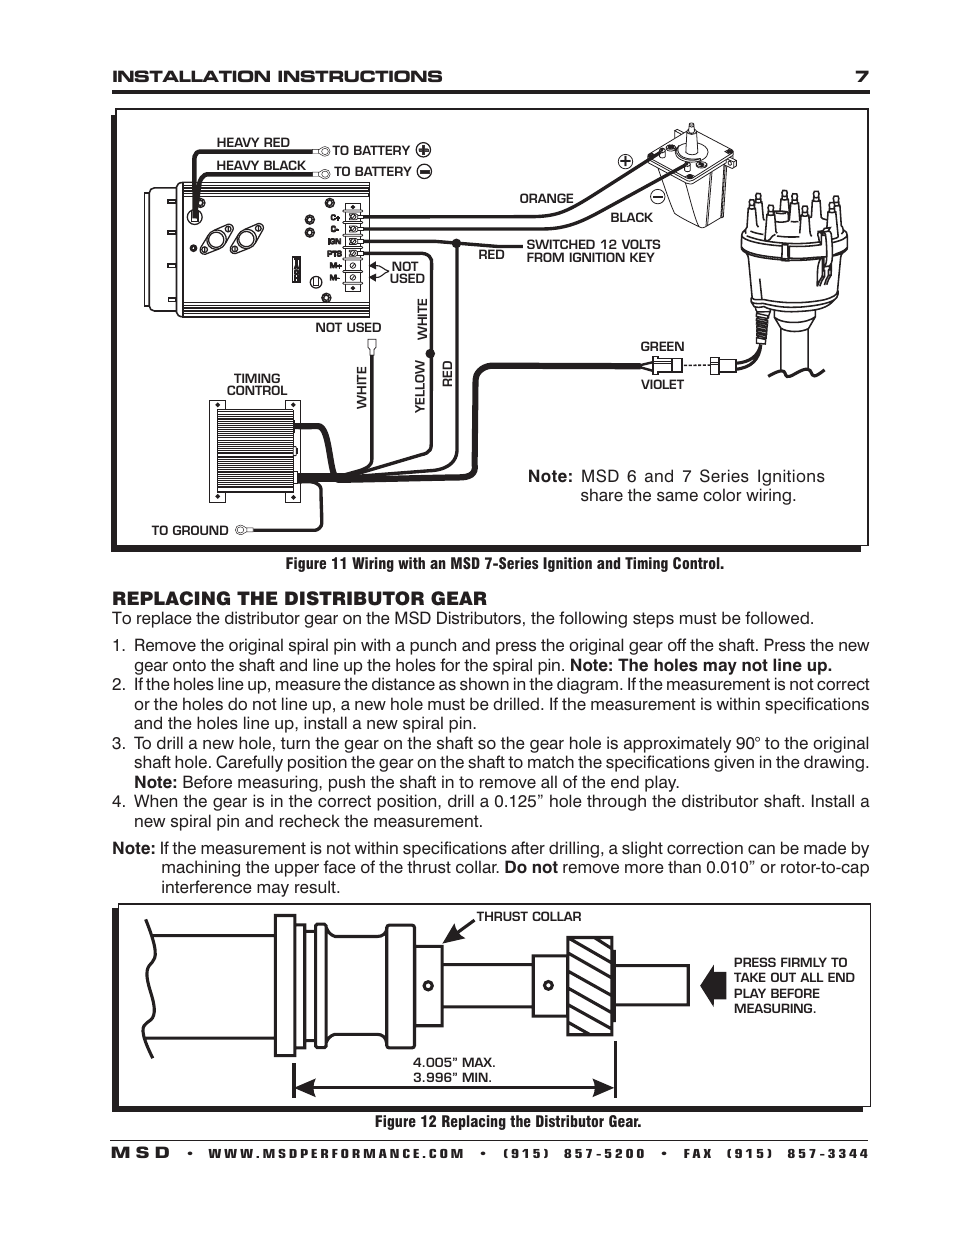 ford 460 msd ignition wiring diagram 6401 msd ignition wiring diagram ford #4